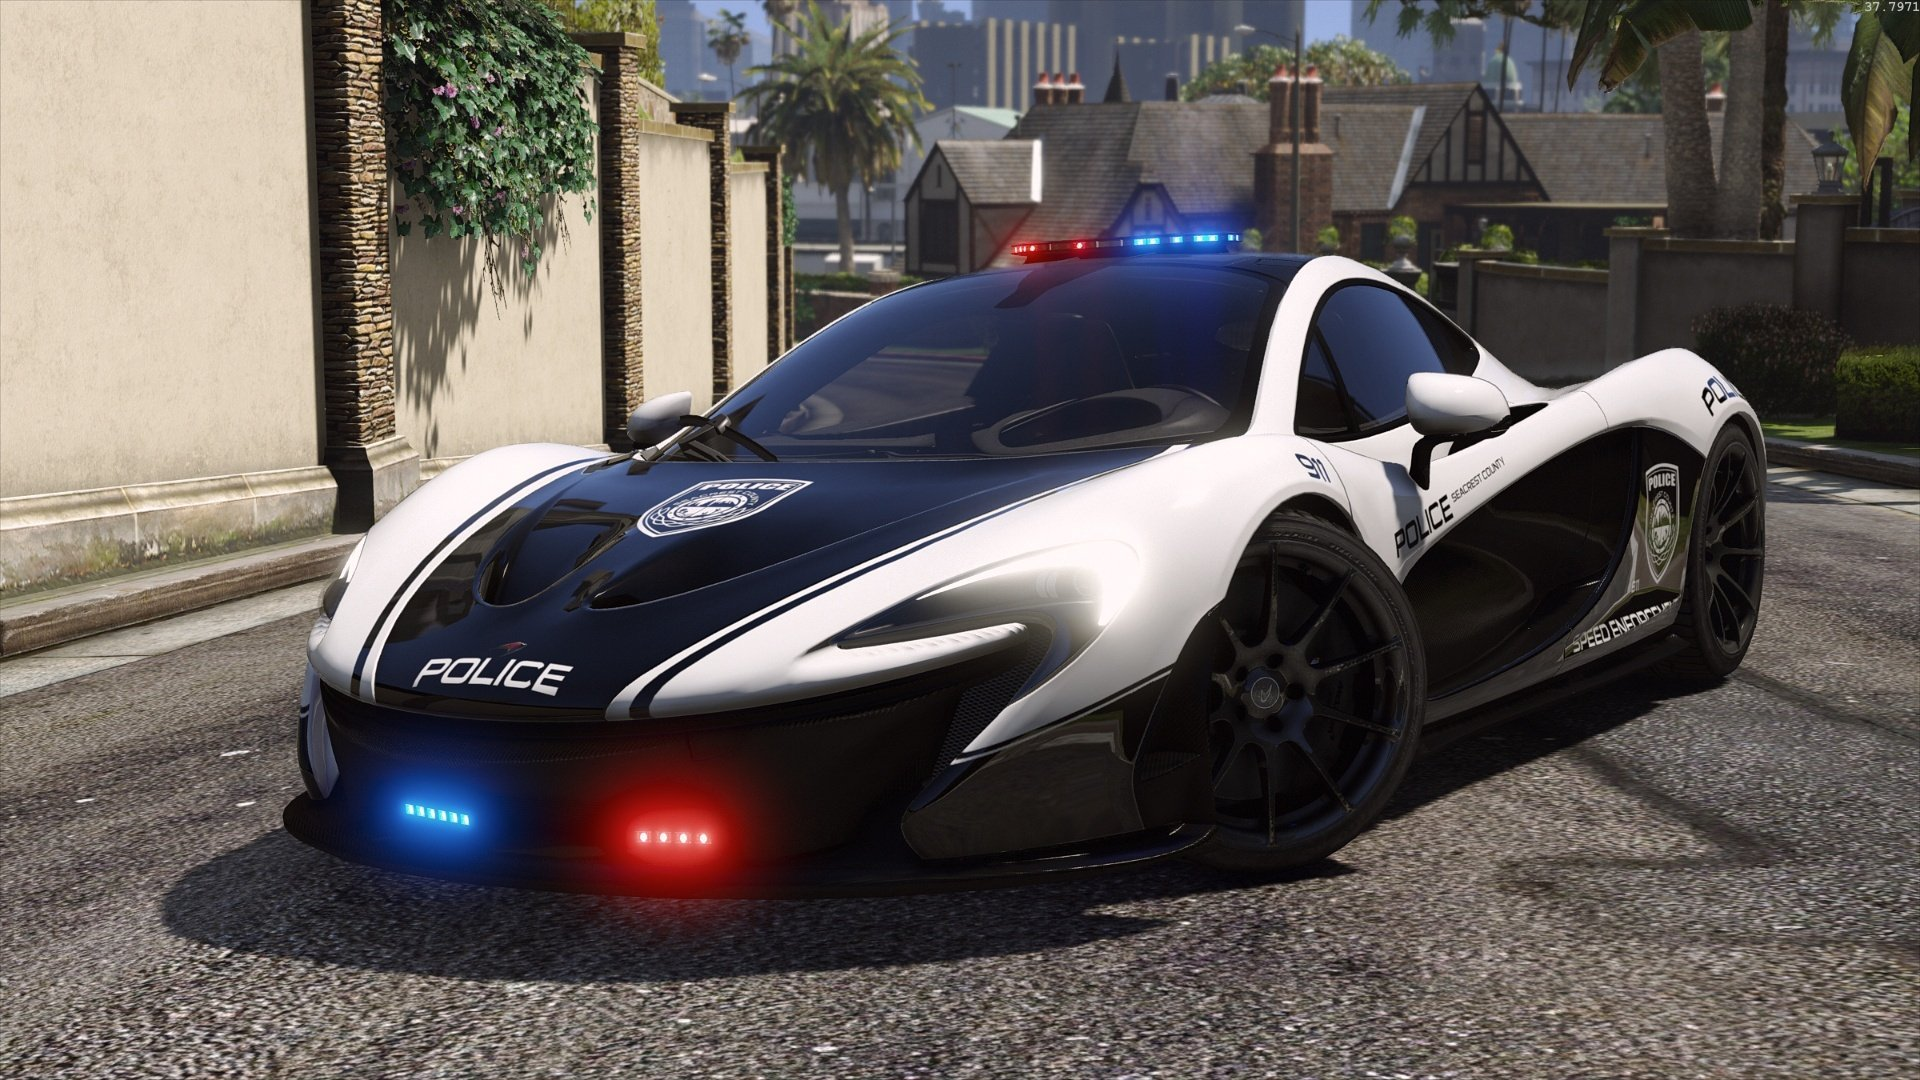 mclaren p1 hot pursuit police add on replace template gta5. Black Bedroom Furniture Sets. Home Design Ideas